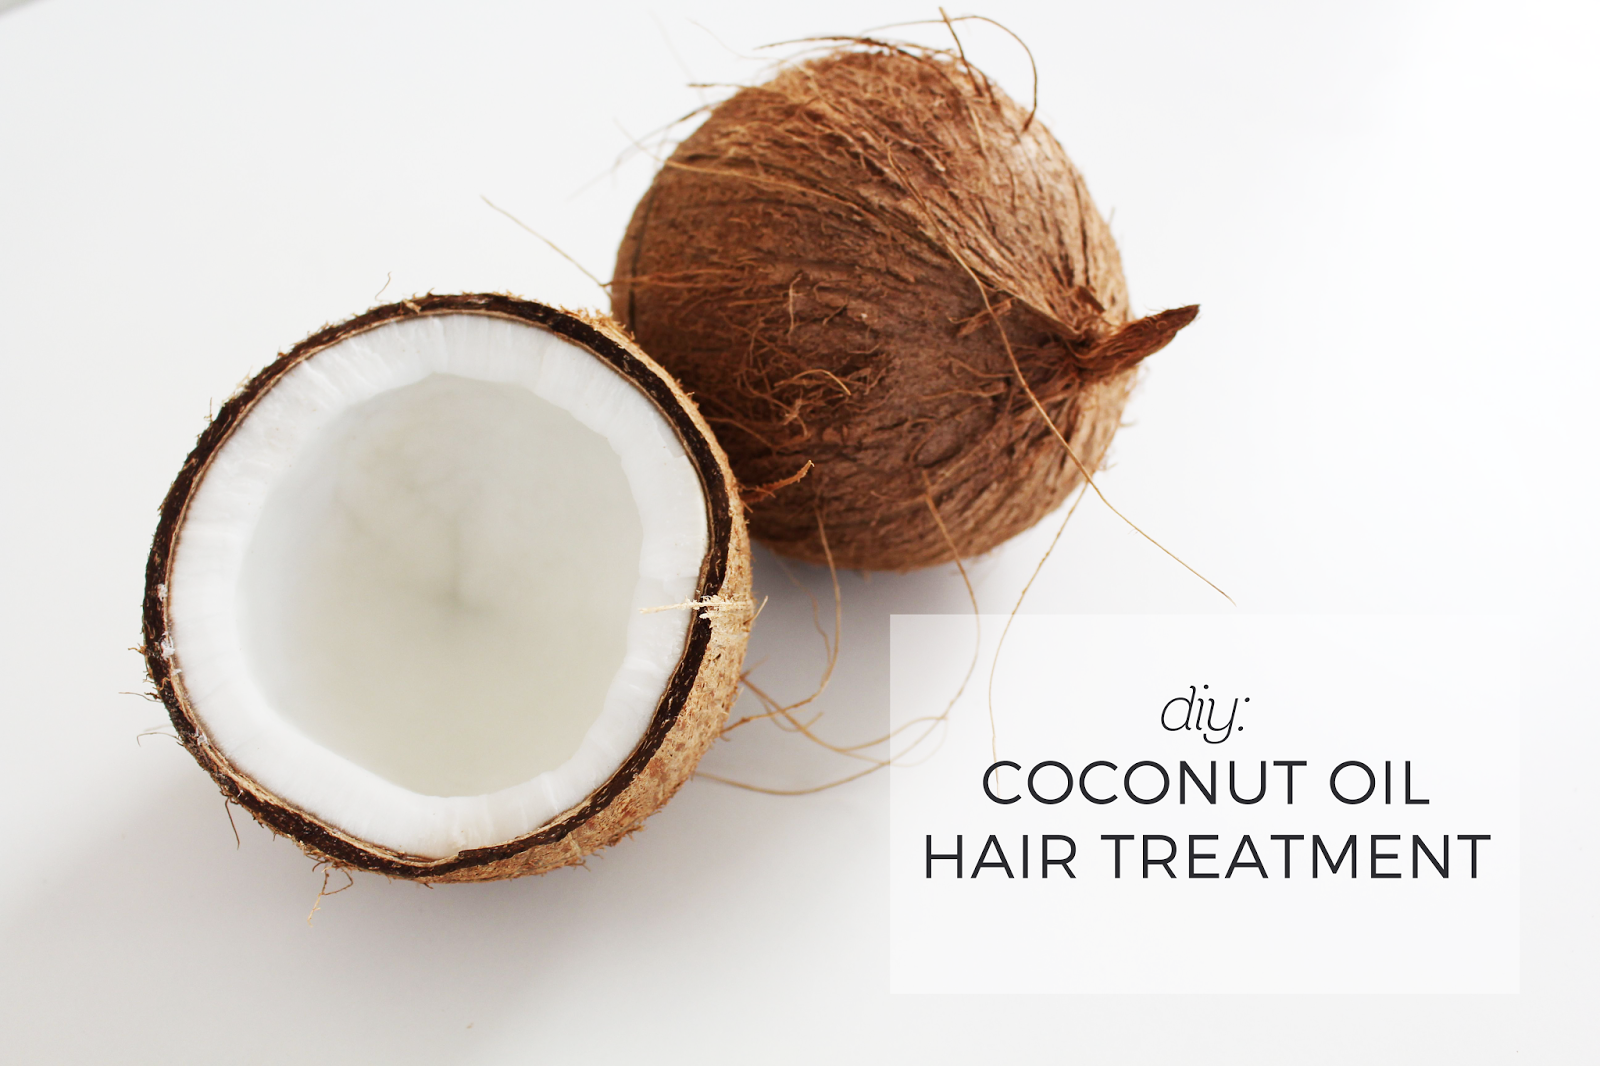 Diy Hair Mask Coconut Oil Dwell In Beauty Diy Coconut Oil Mask For Hair